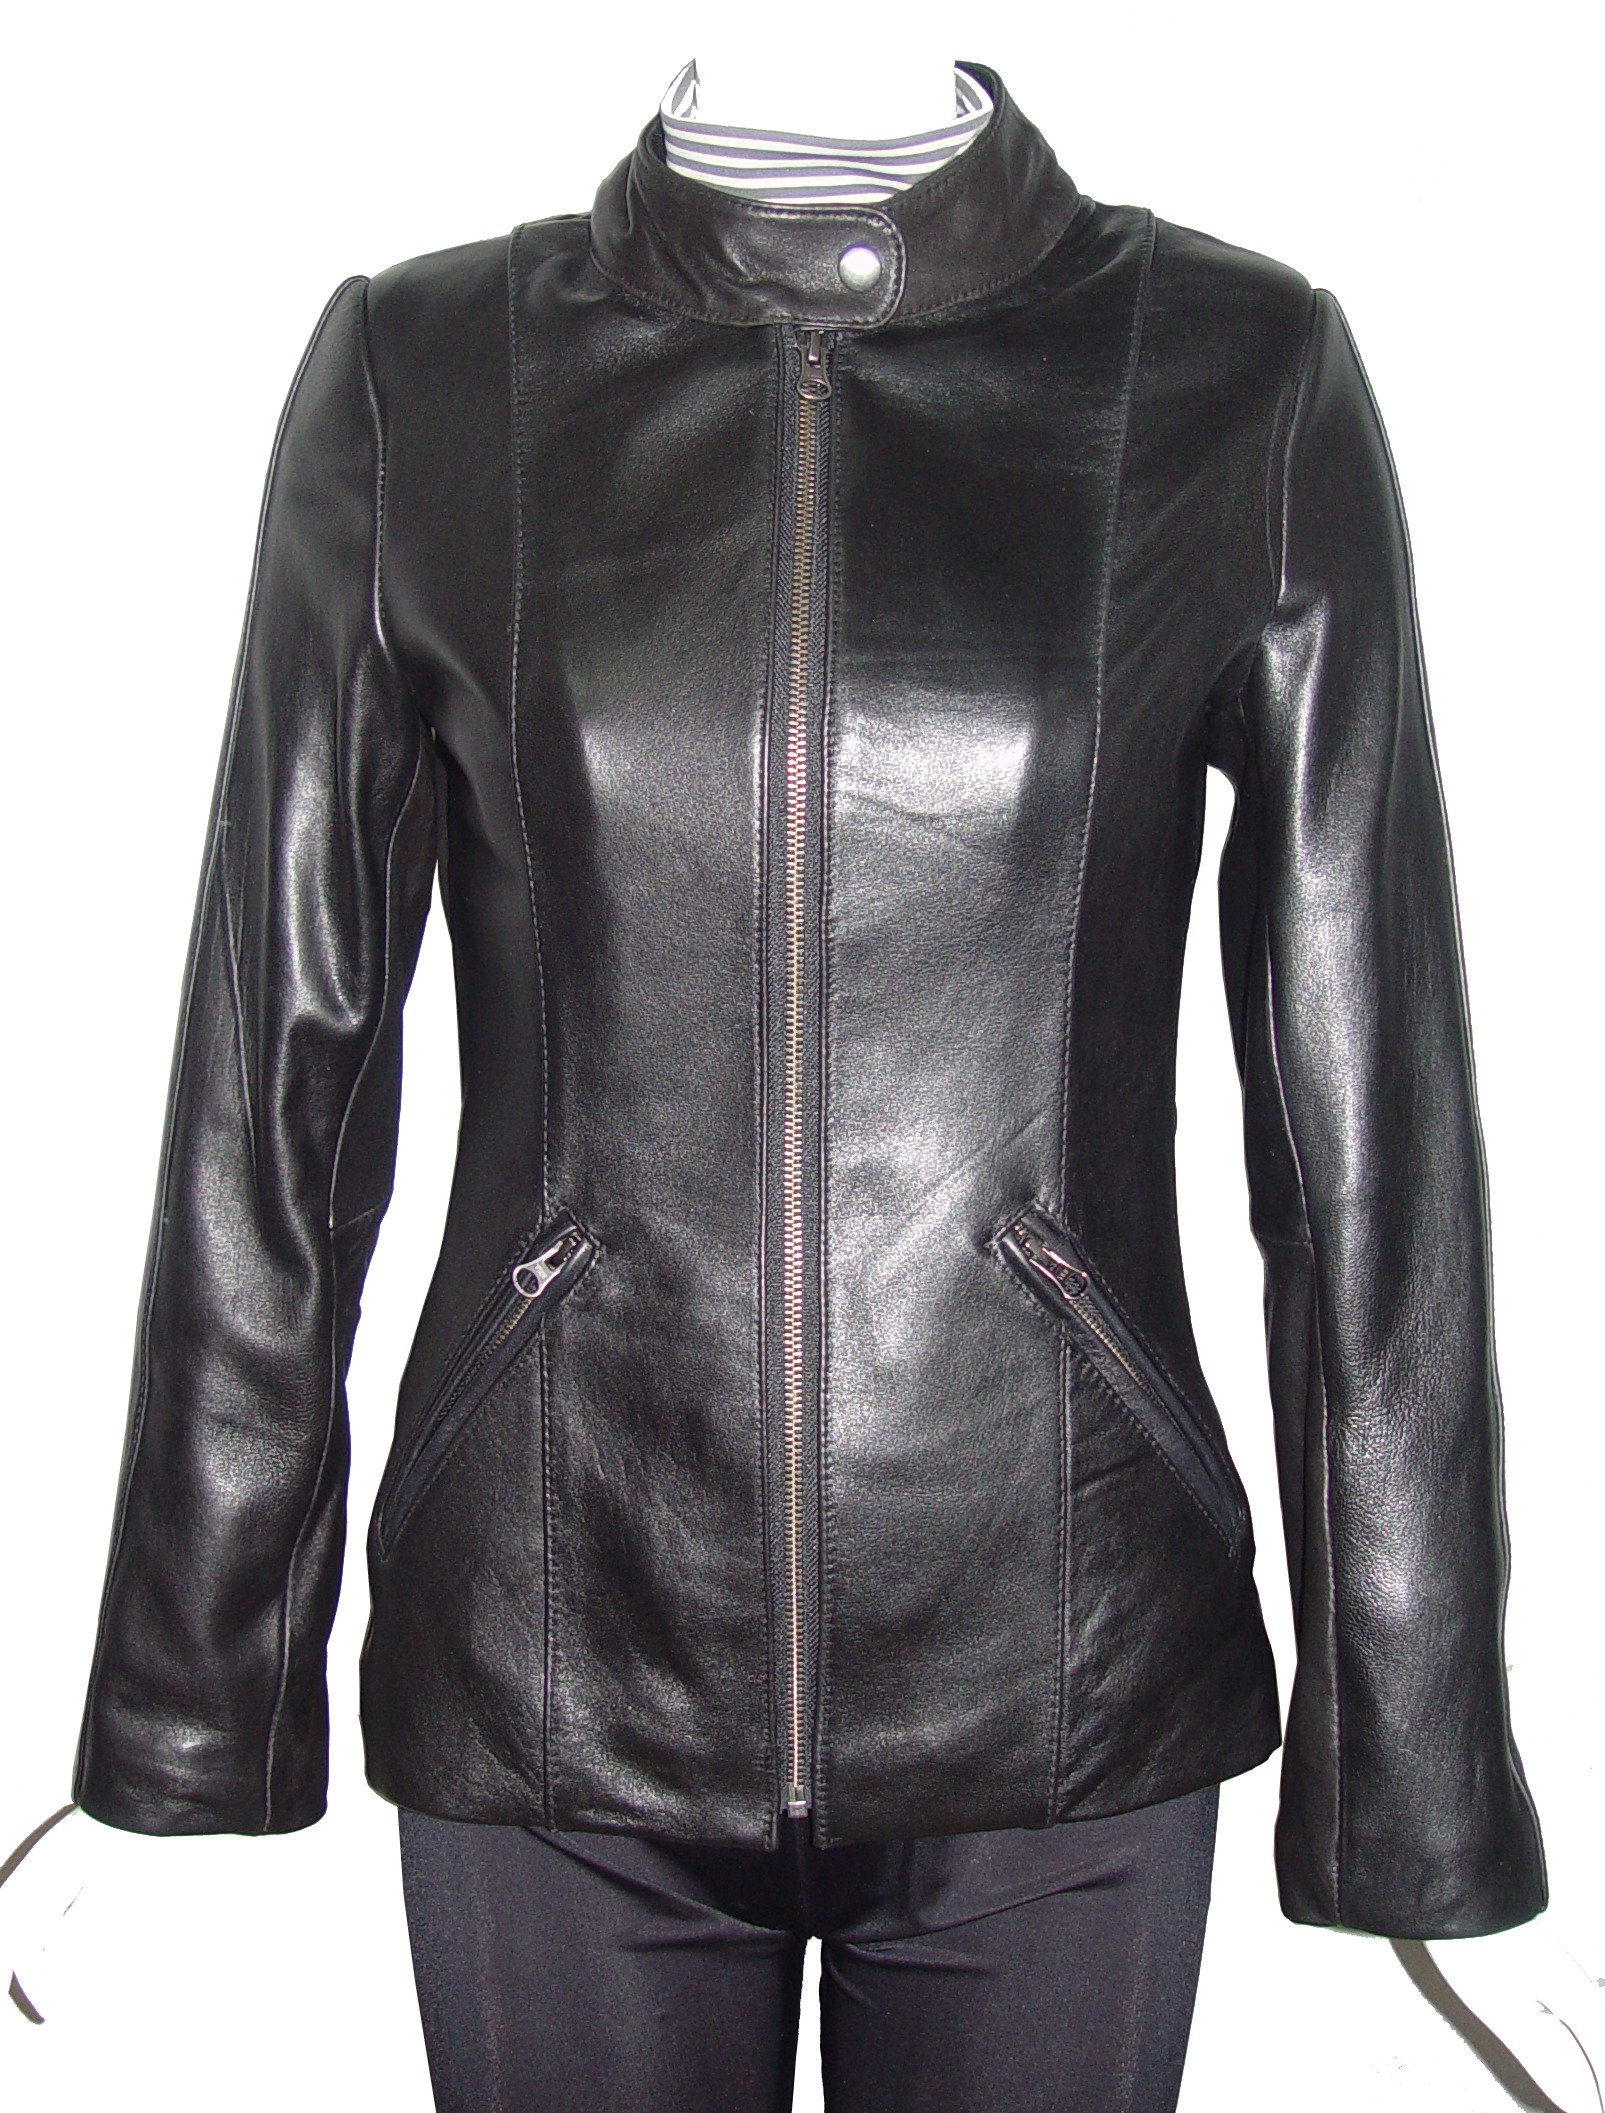 Nettailor Women PETITE & ALL SIZE Fashion 4126 Leather Motorcycle Jacket